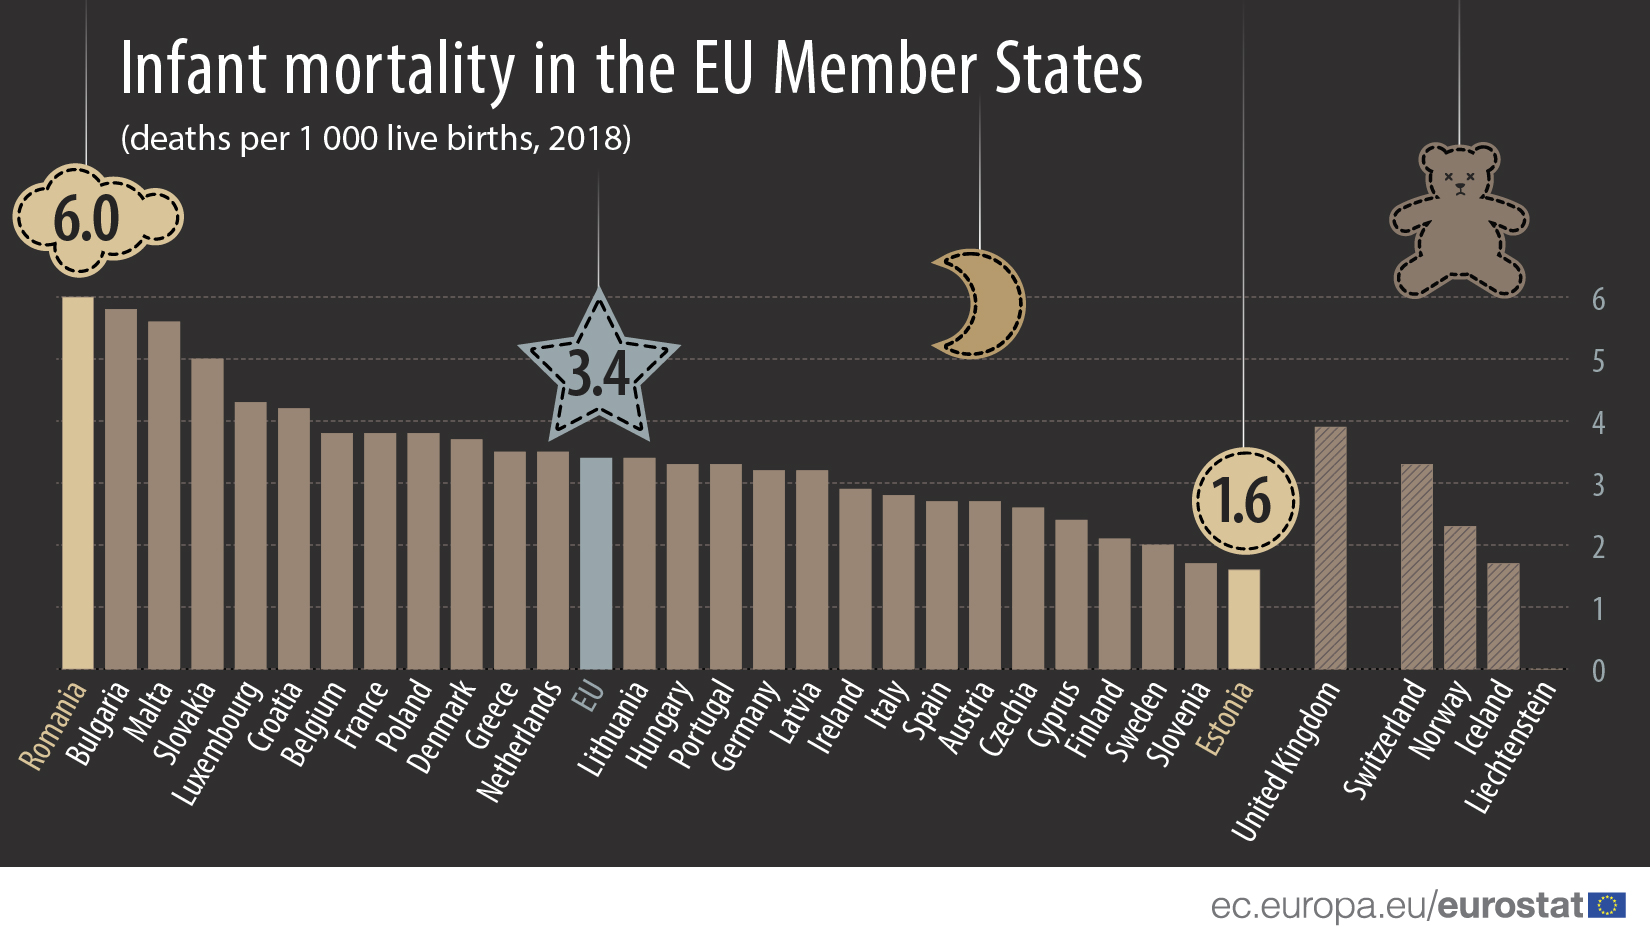 Infant mortality in the EU Member States, 2018